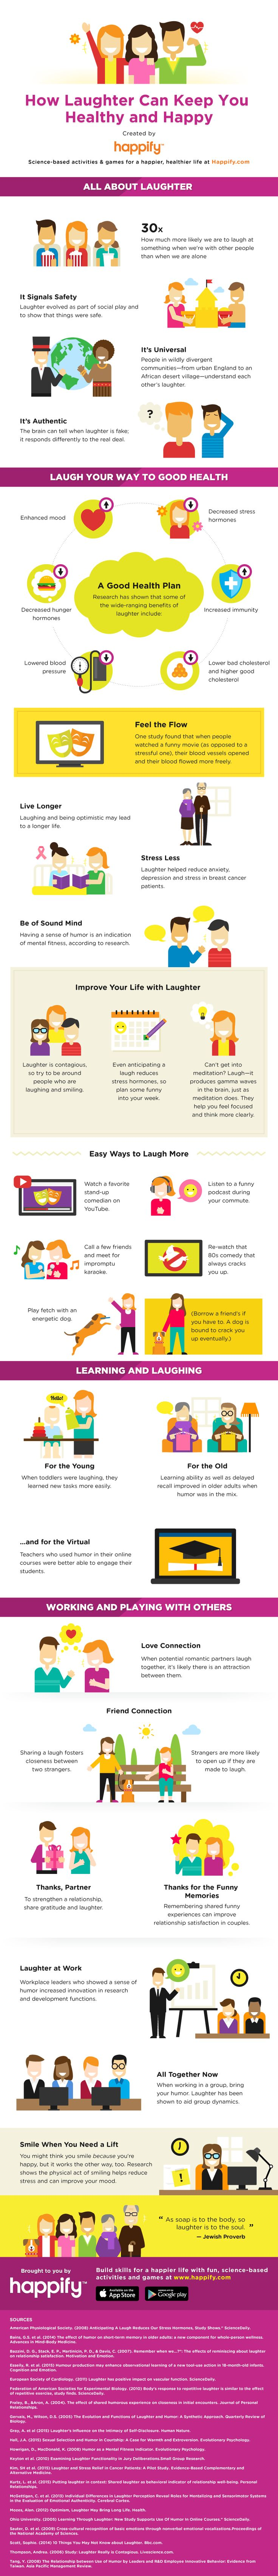 It's true—you can laugh your way to better health, more friends, and a happier relationship.